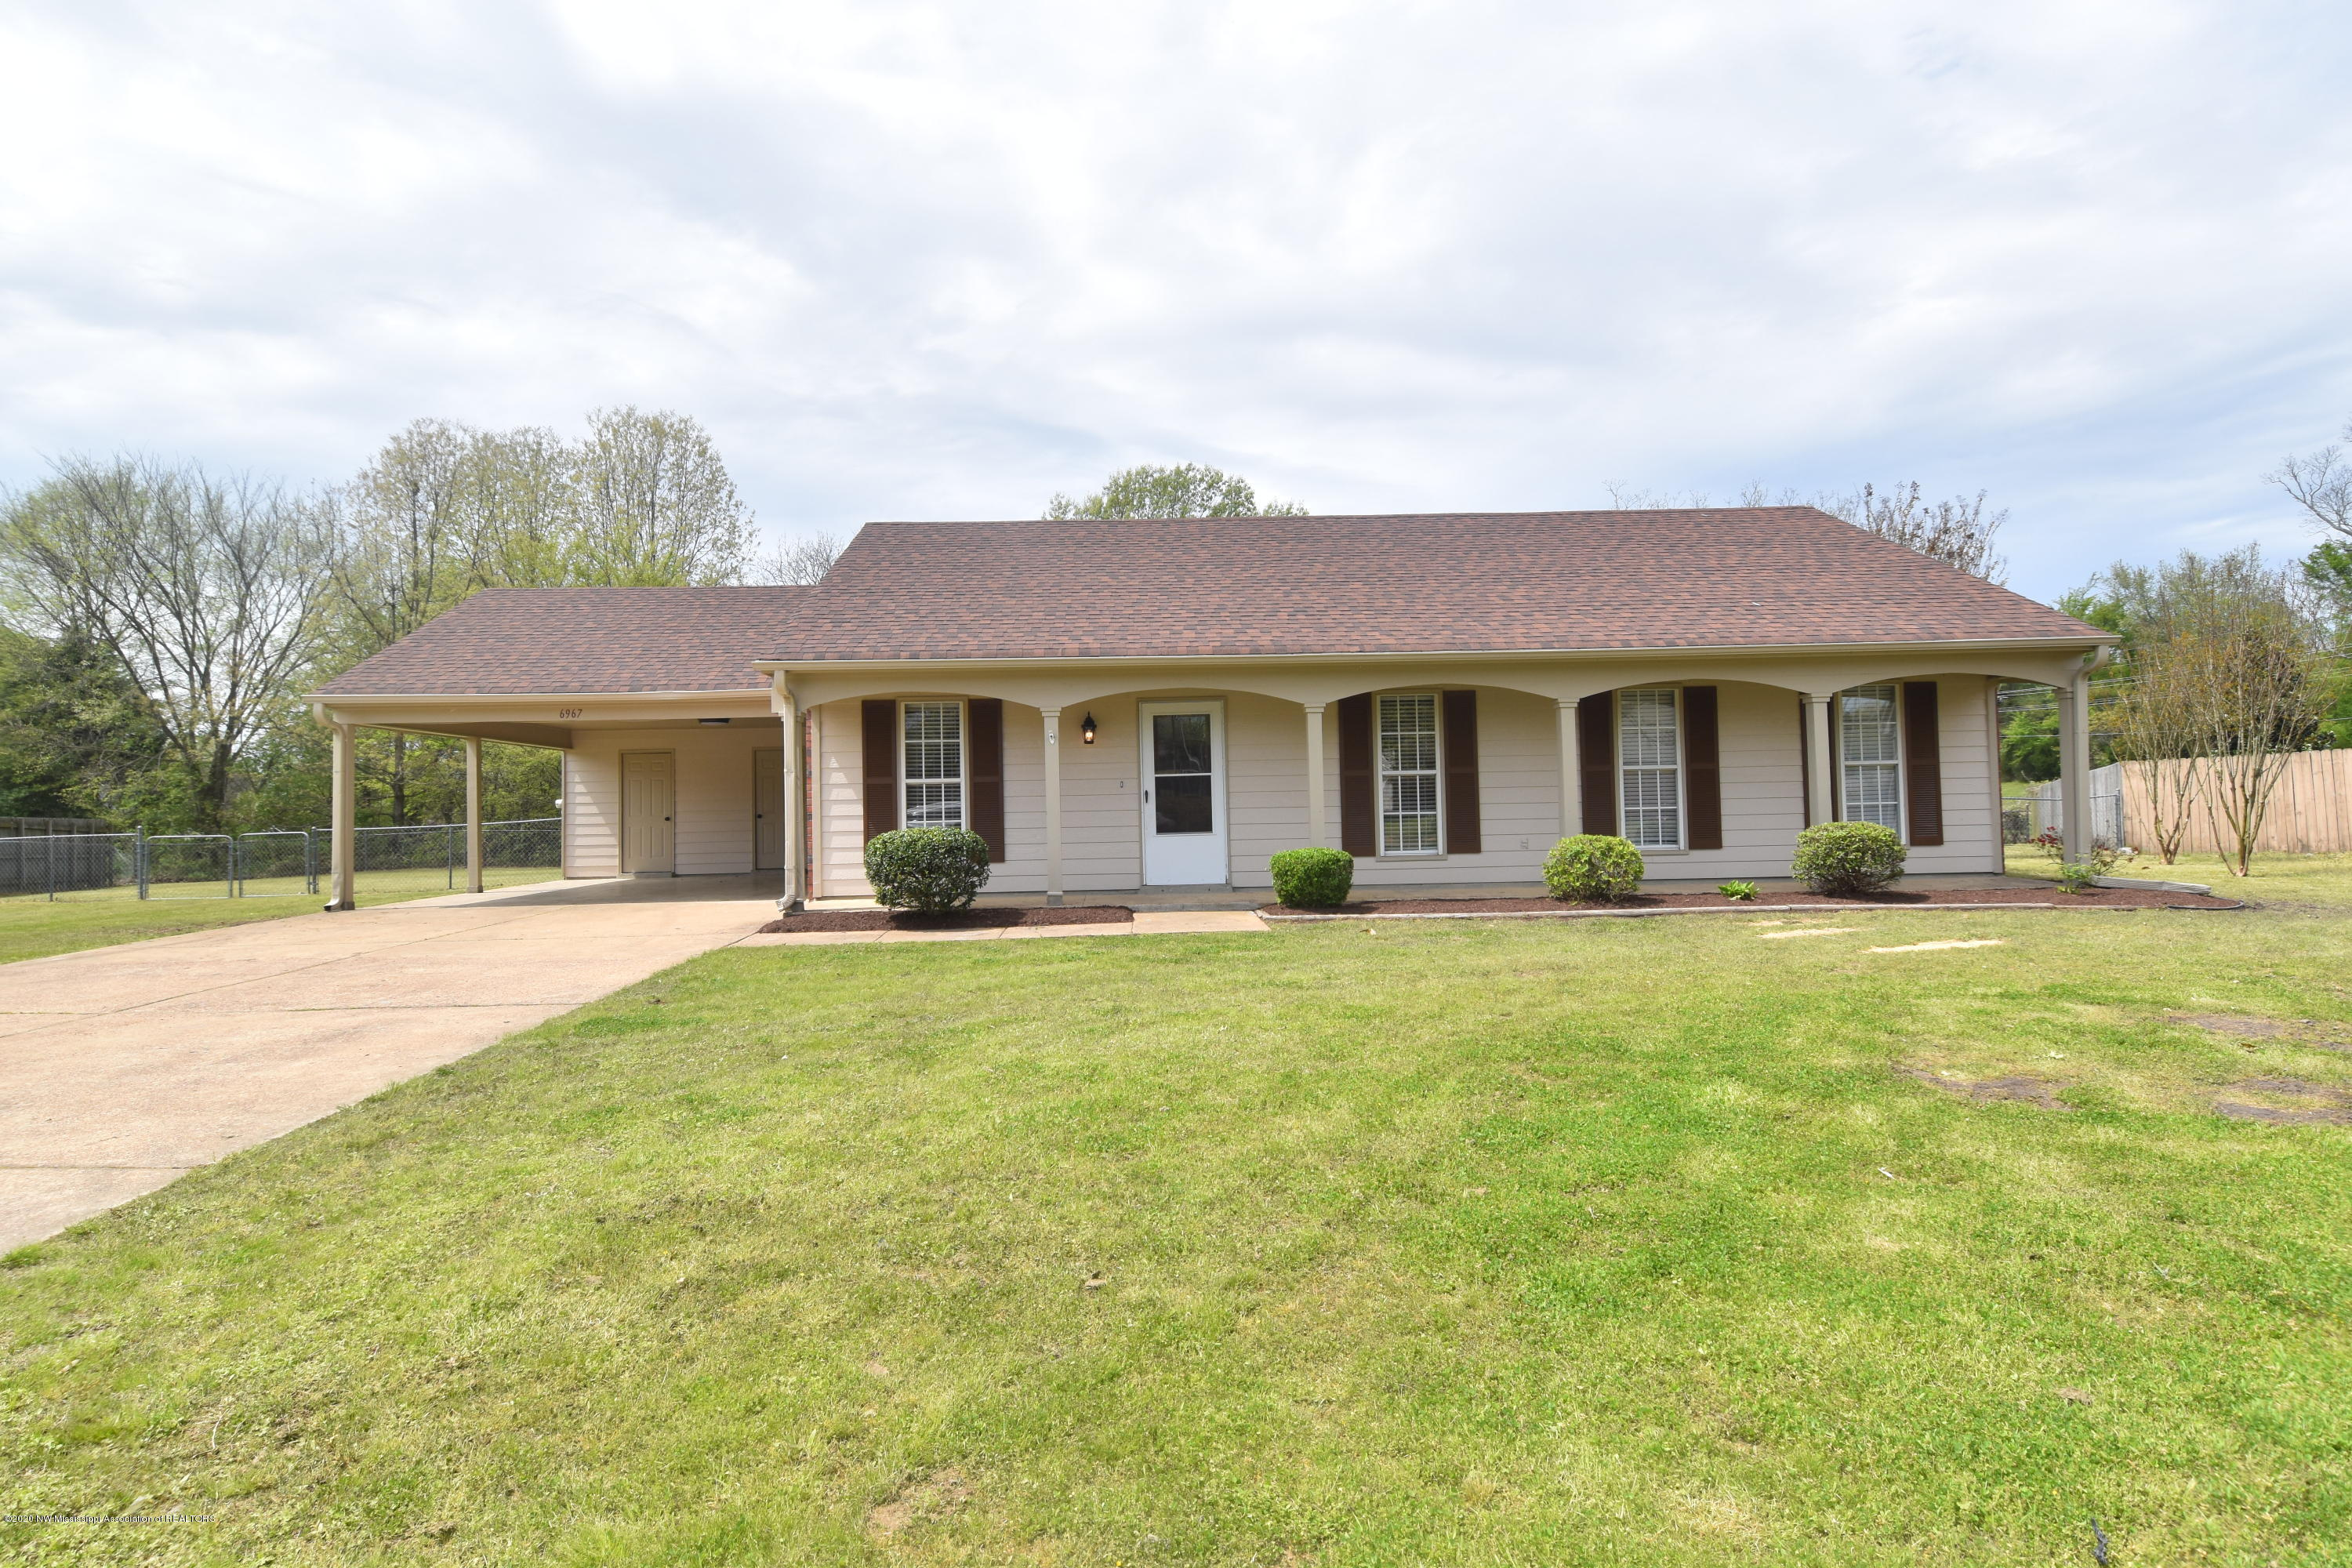 6967 Green Way Cove, Olive Branch in DeSoto County, MS 38654 Home for Sale